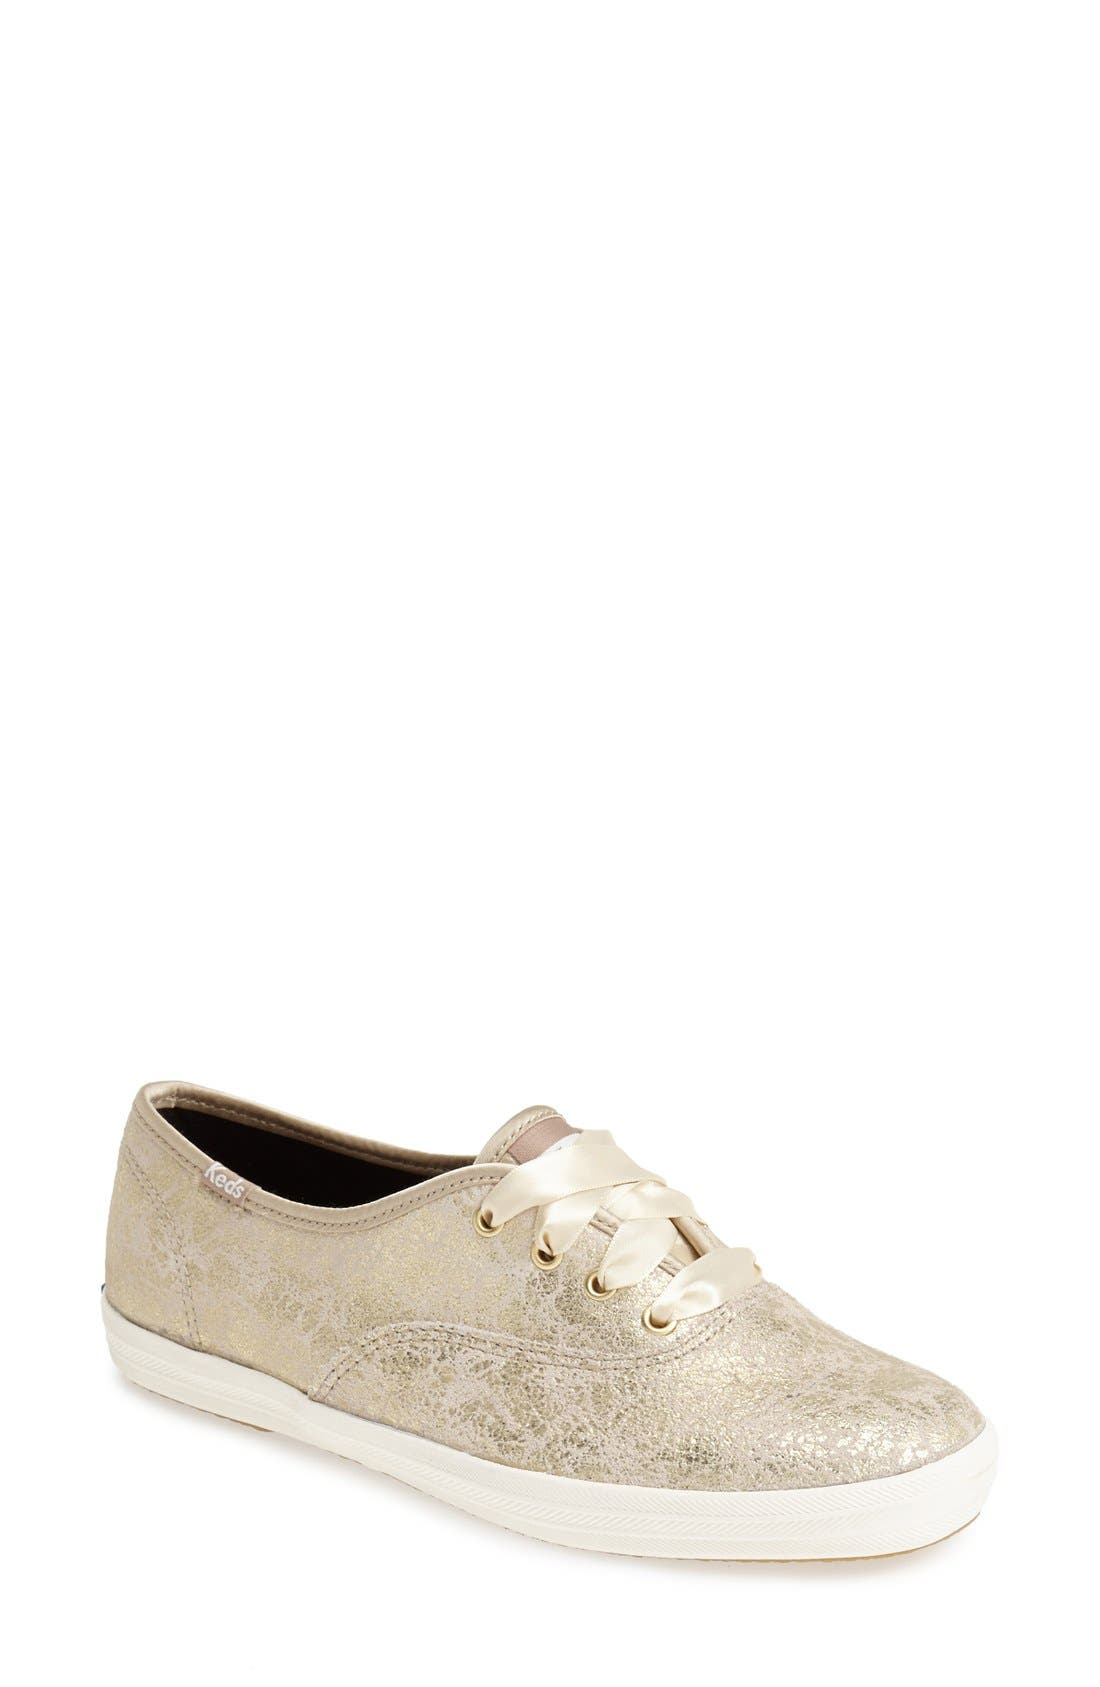 Main Image - Keds® 'Champion' Metallic Leather Sneaker (Women)